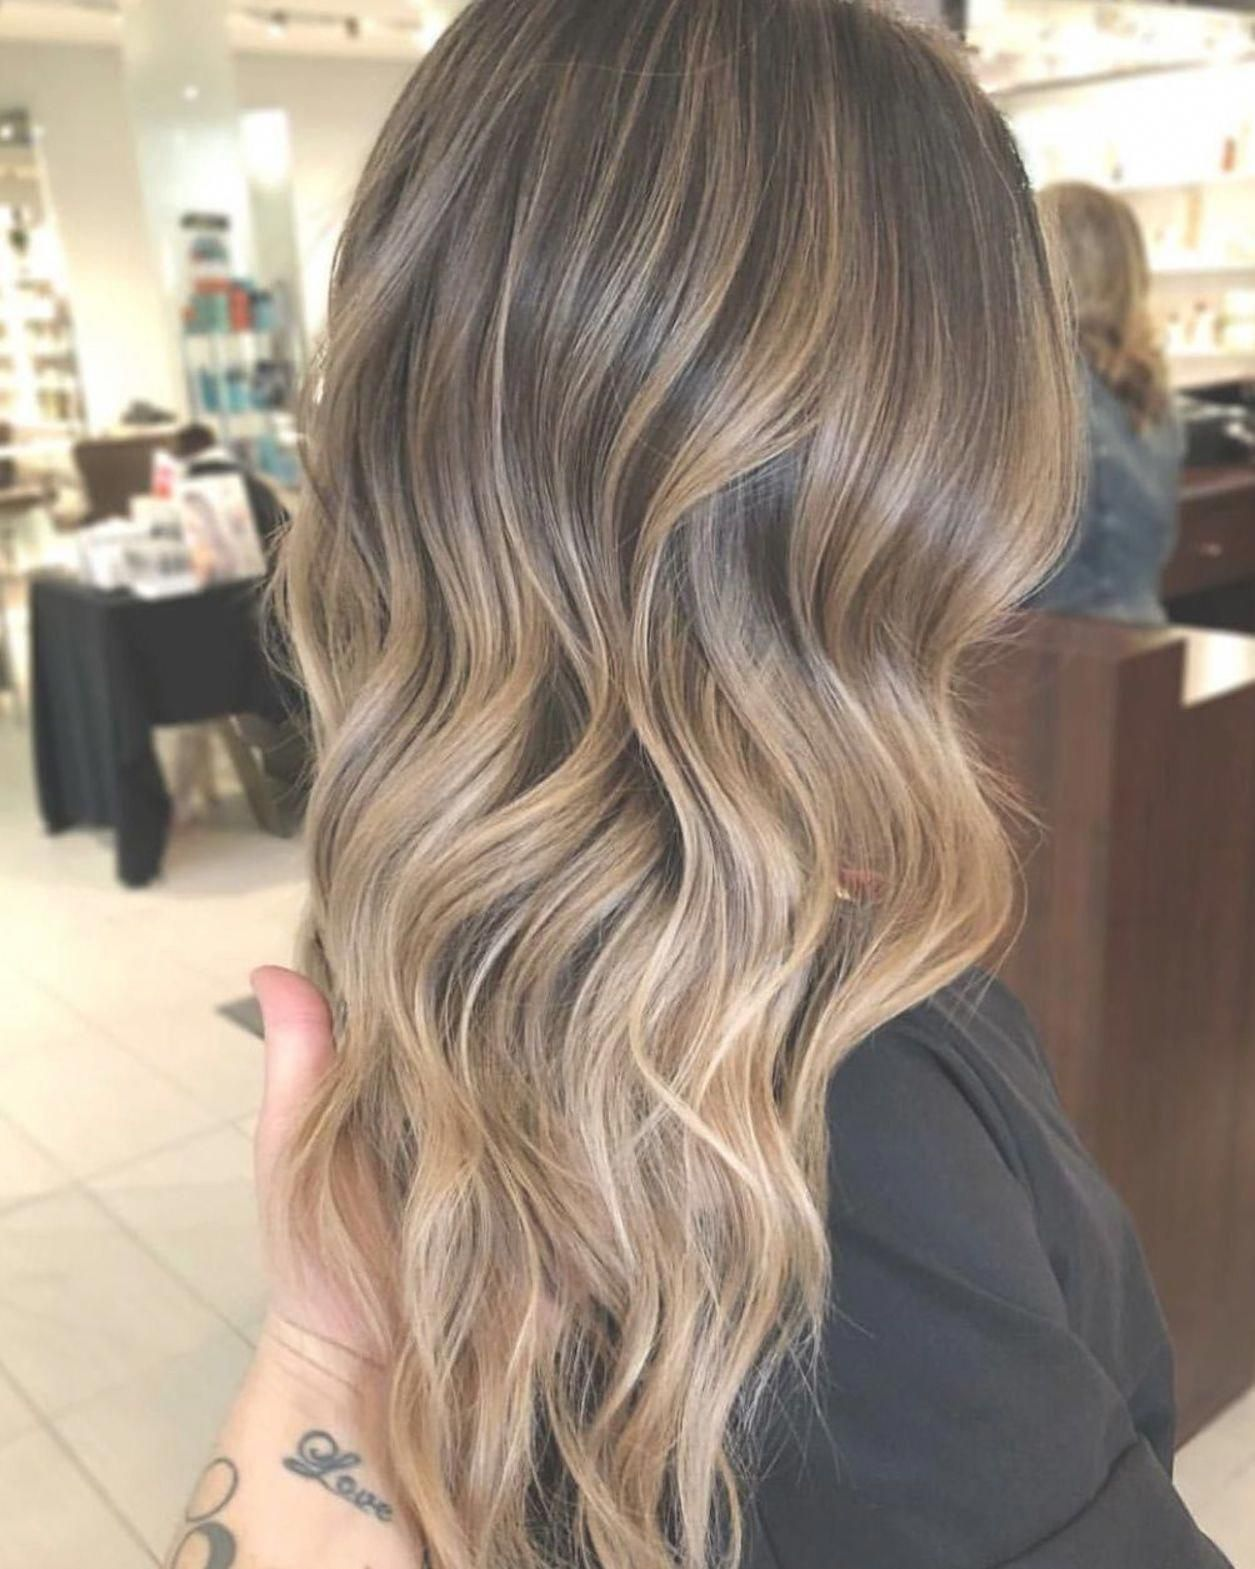 49 Beautiful Light Brown Hair Color For A New Look The Best Hair Colour Ideas For A Change Up This Year Brunette Hair Color Brown Hair Balayage Balayage Hair